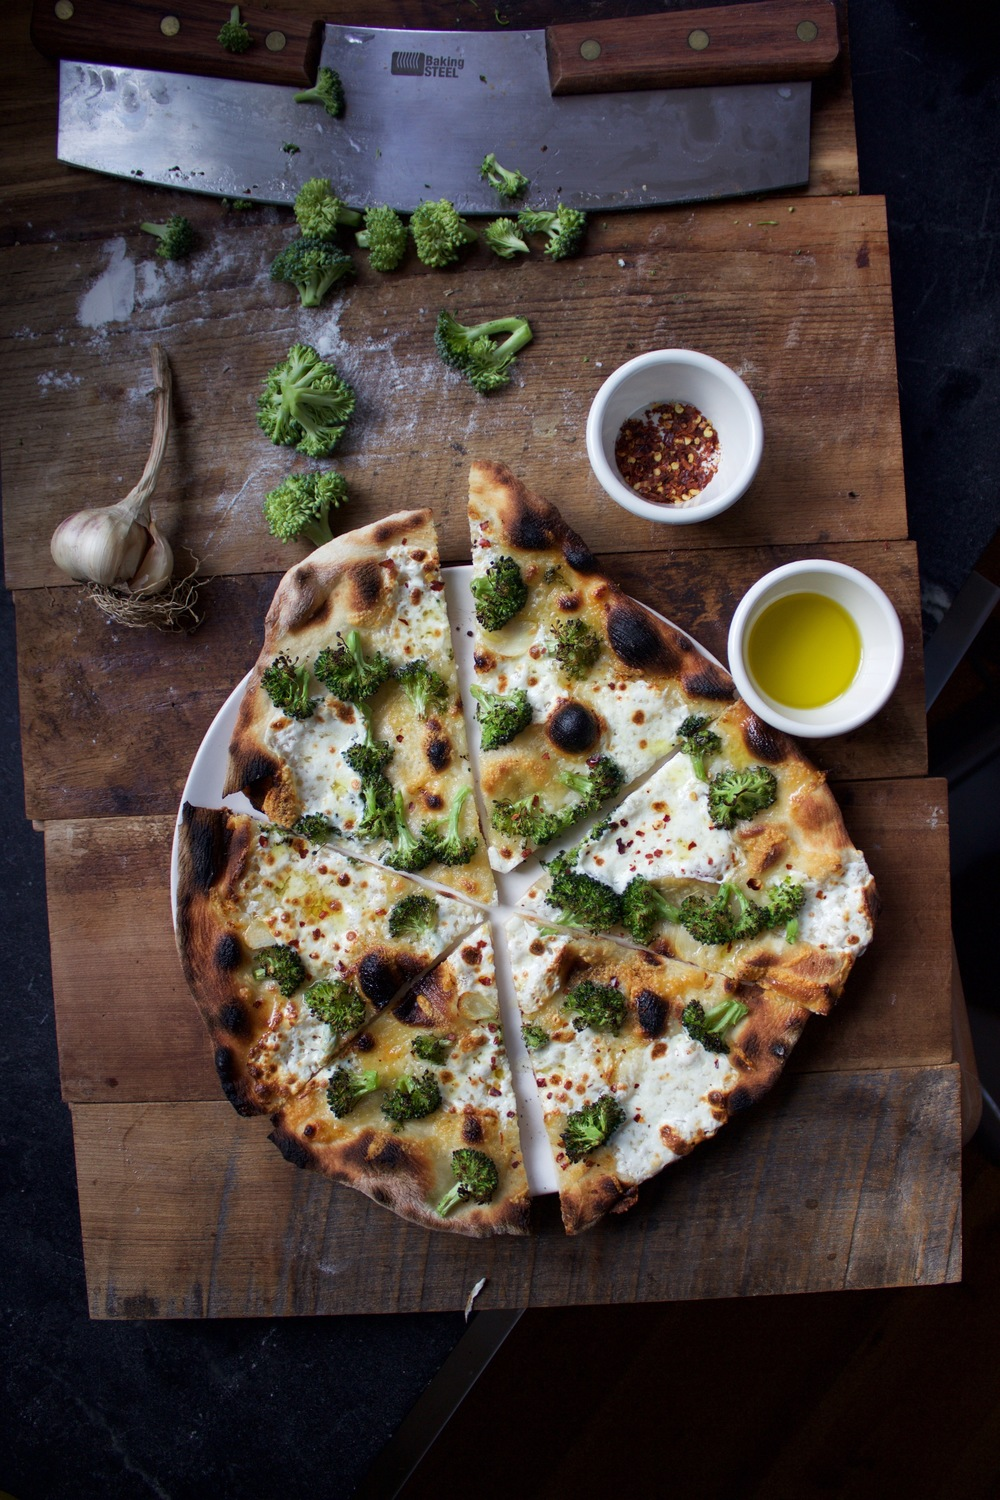 Broccoli think crust pizza